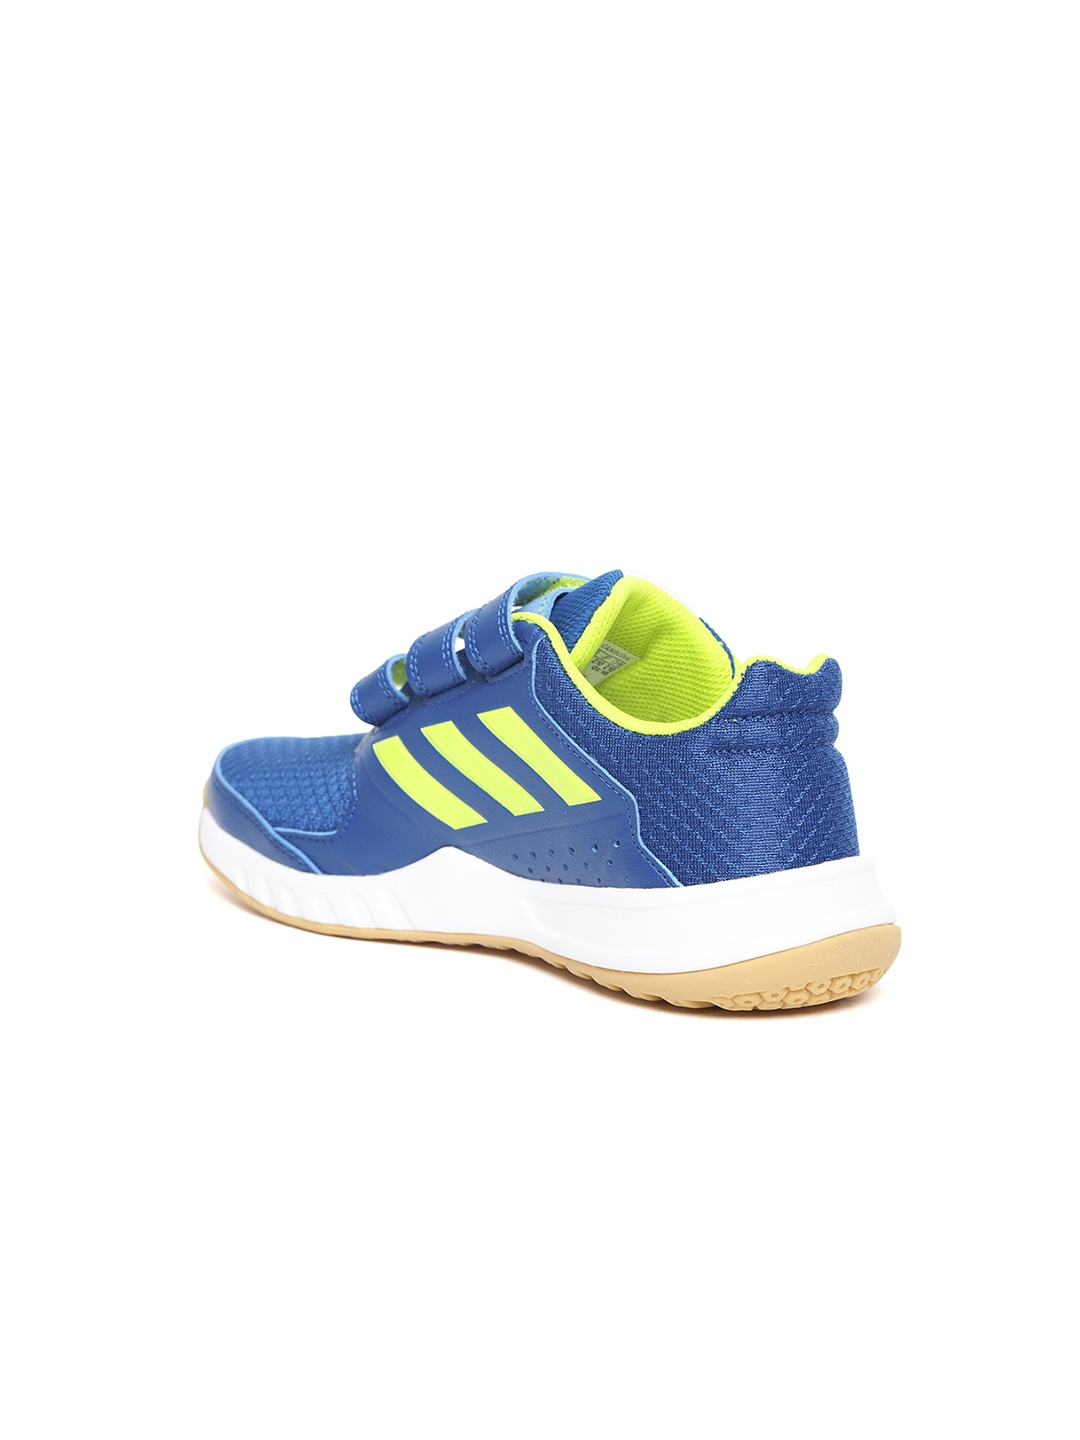 separation shoes aad9c 61b75 Adidas Unisex Blue FORTAGYM Training Shoes